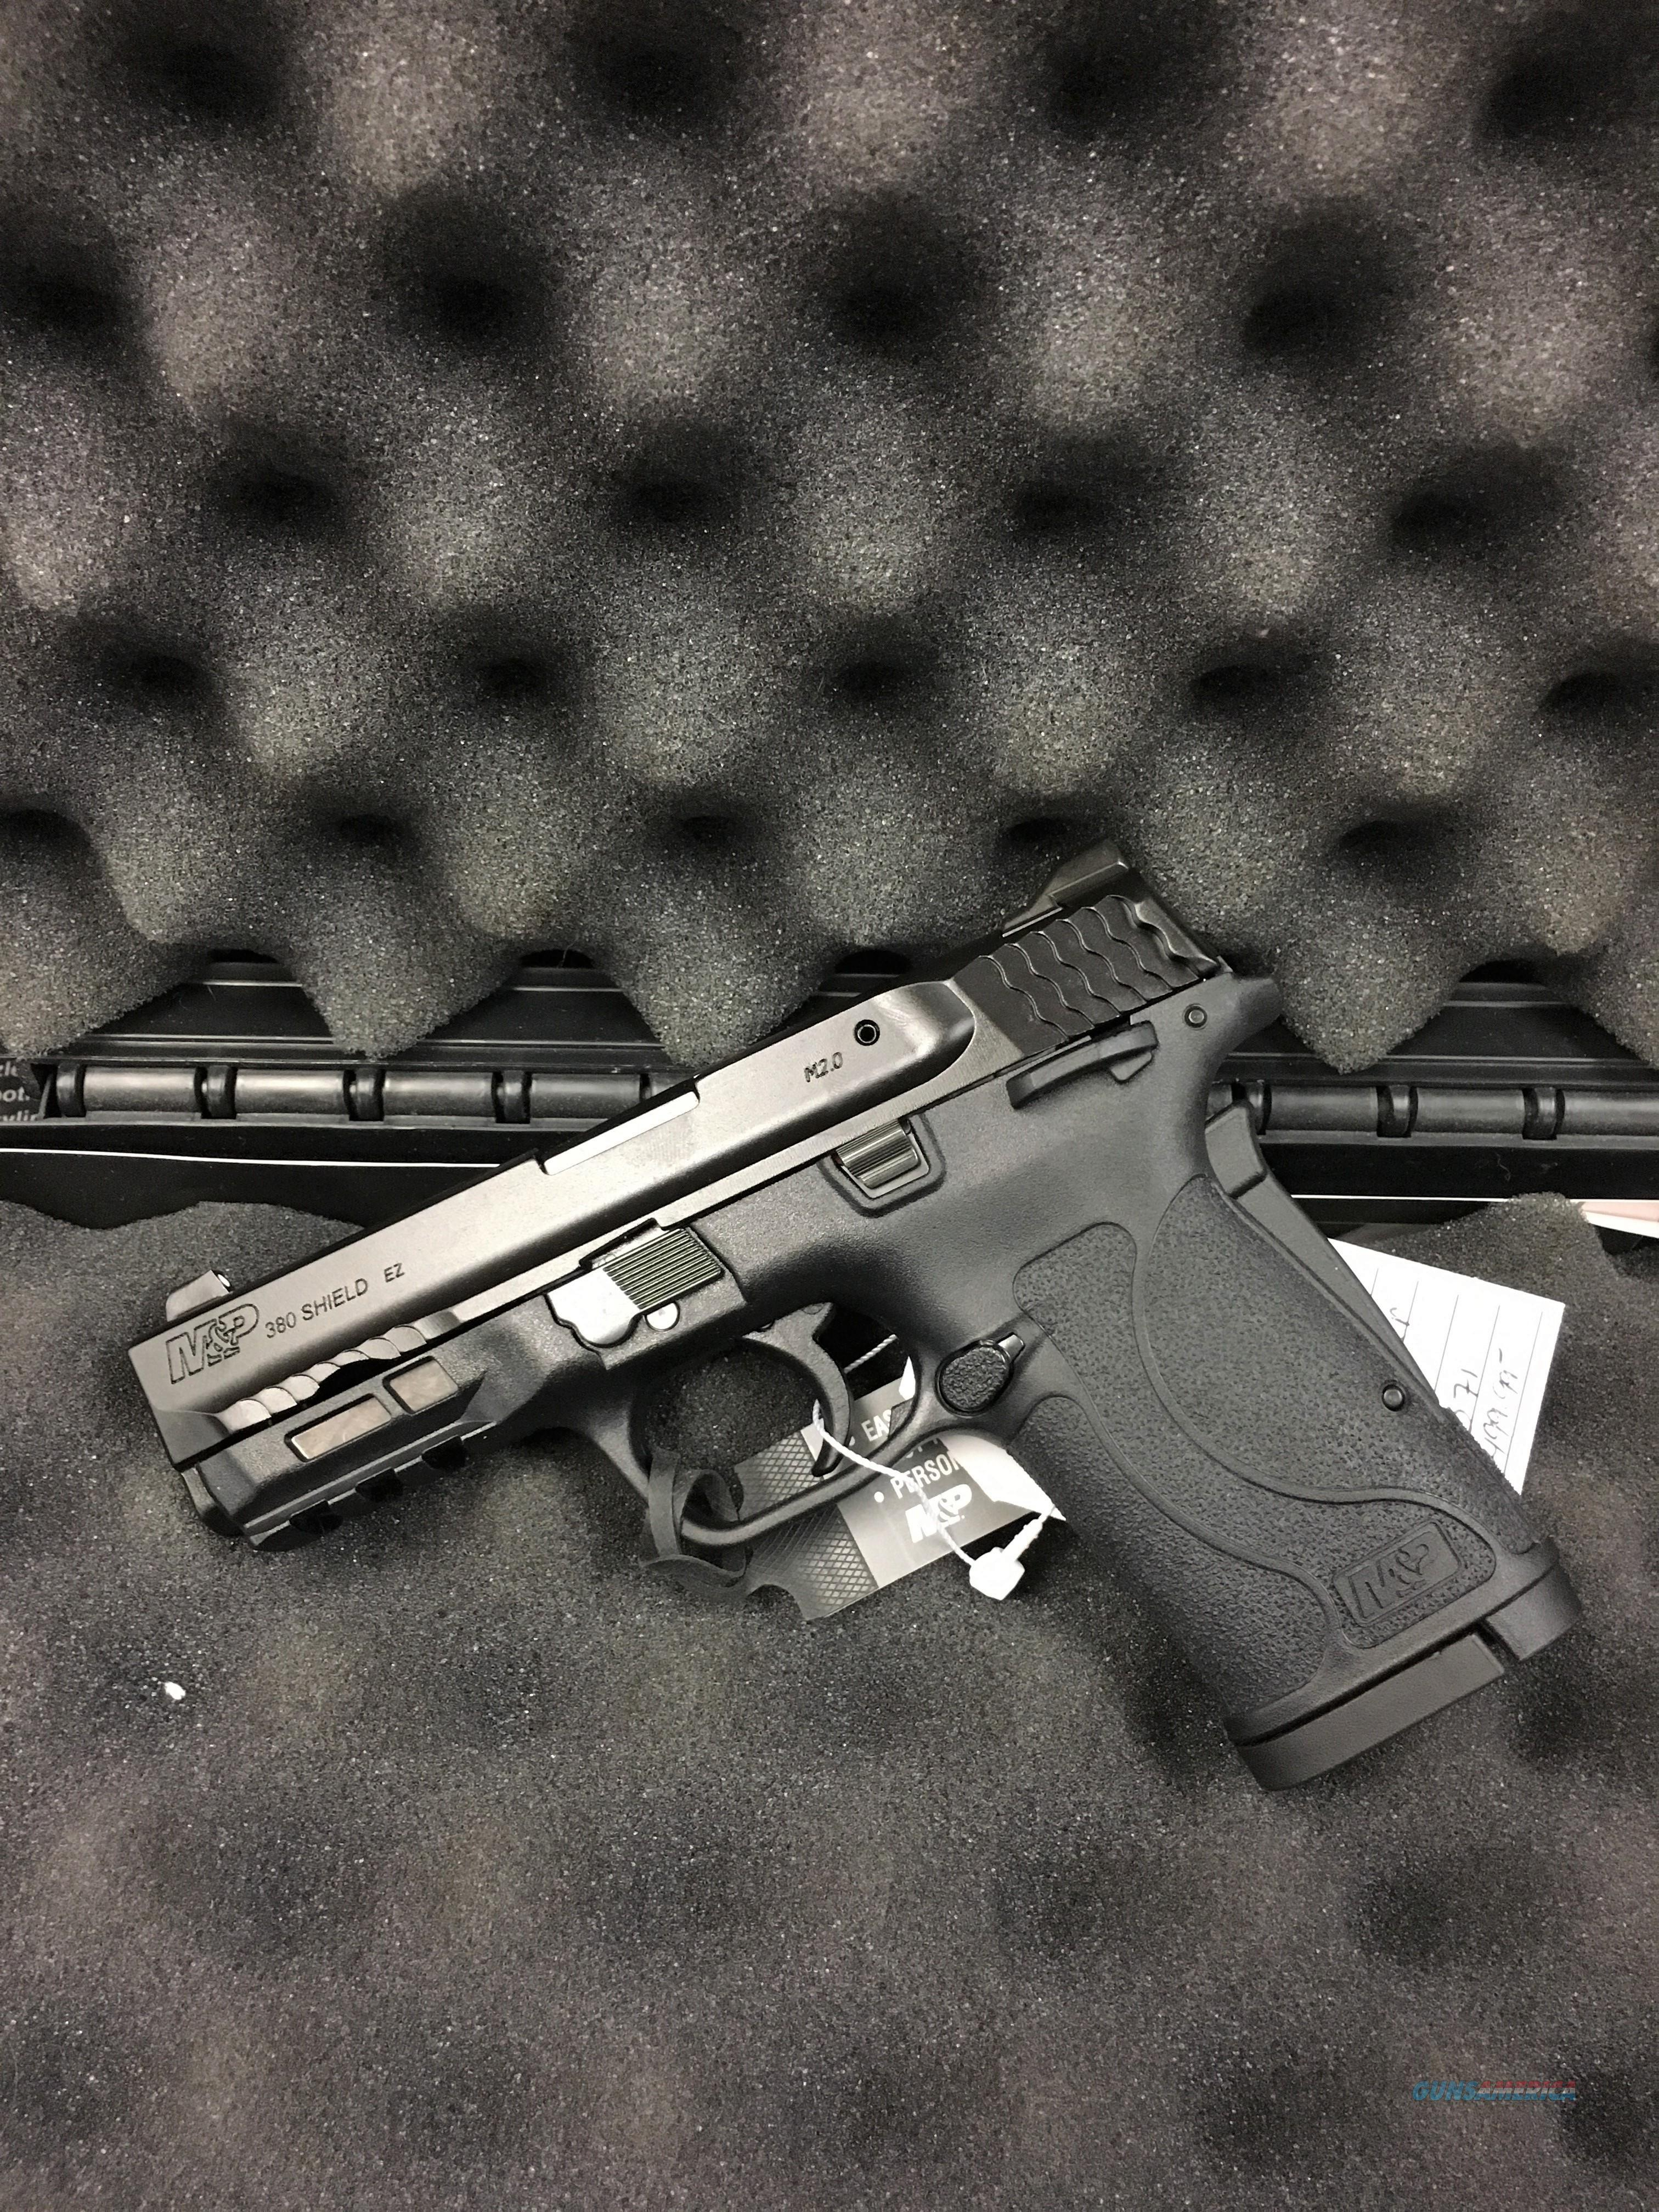 NEW!! SMITH & WESSON M&P 380EZ!!!  Guns > Pistols > Smith & Wesson Pistols - Autos > Polymer Frame